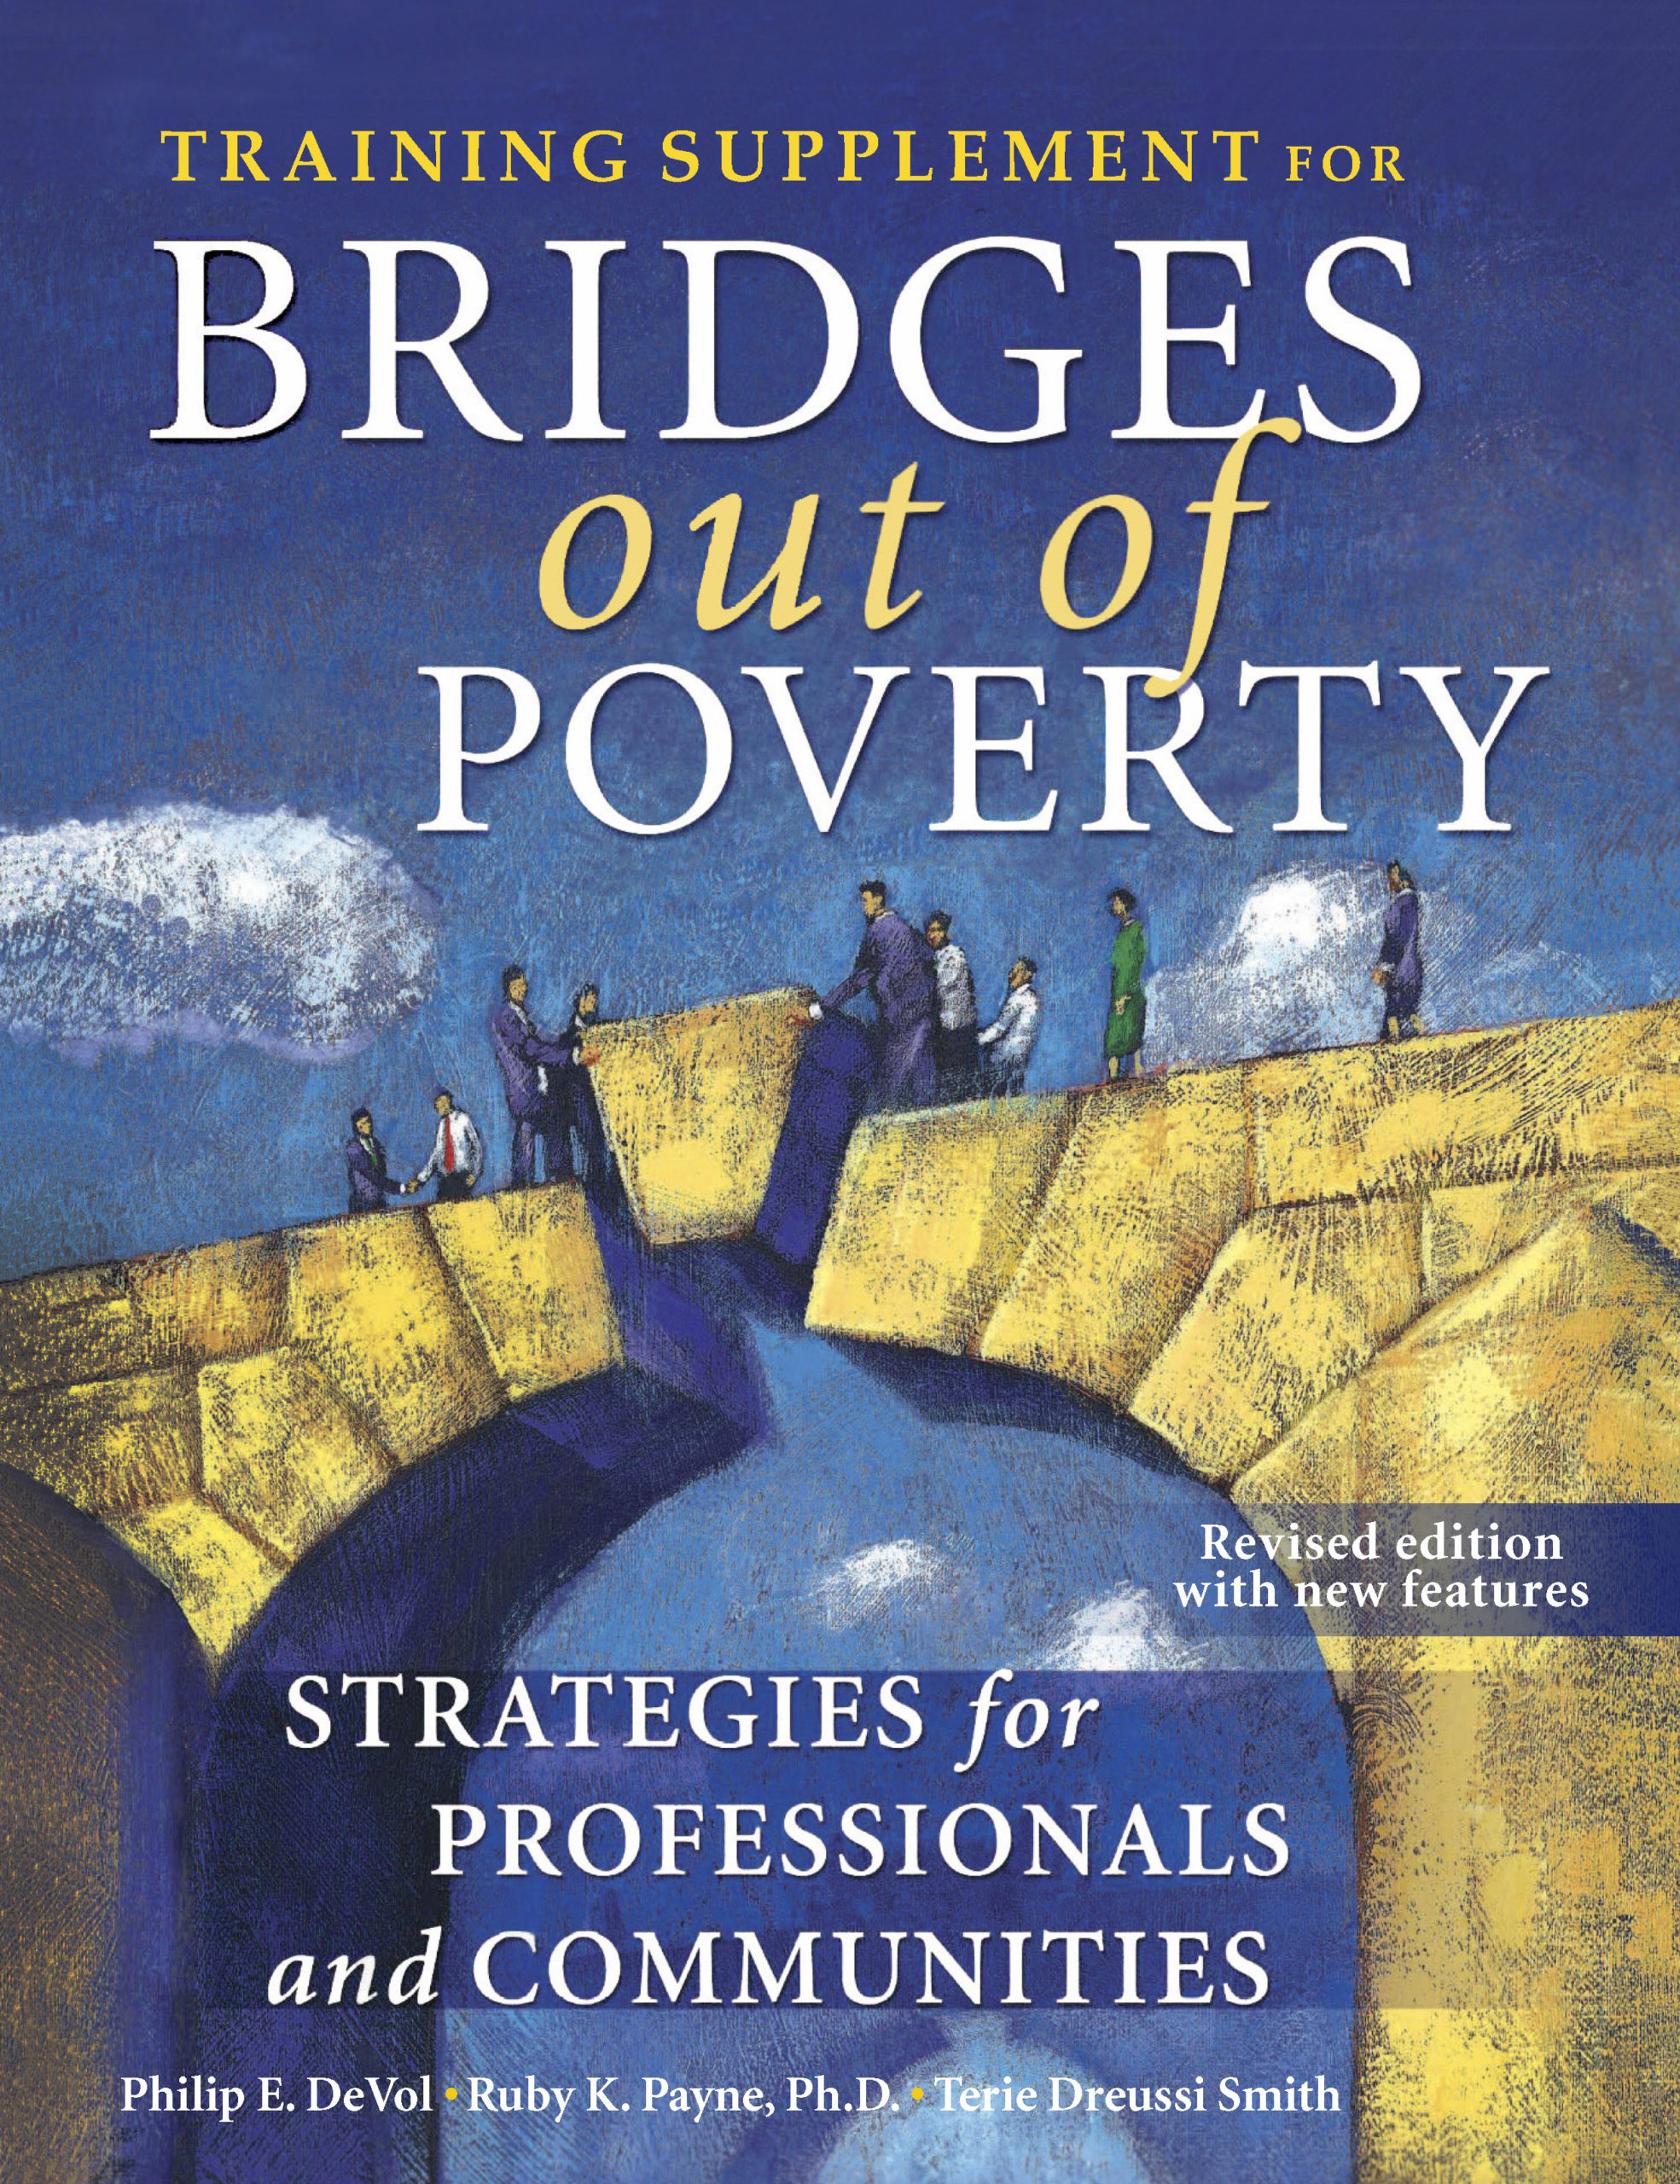 Bridges Out of Poverty Training Supplement